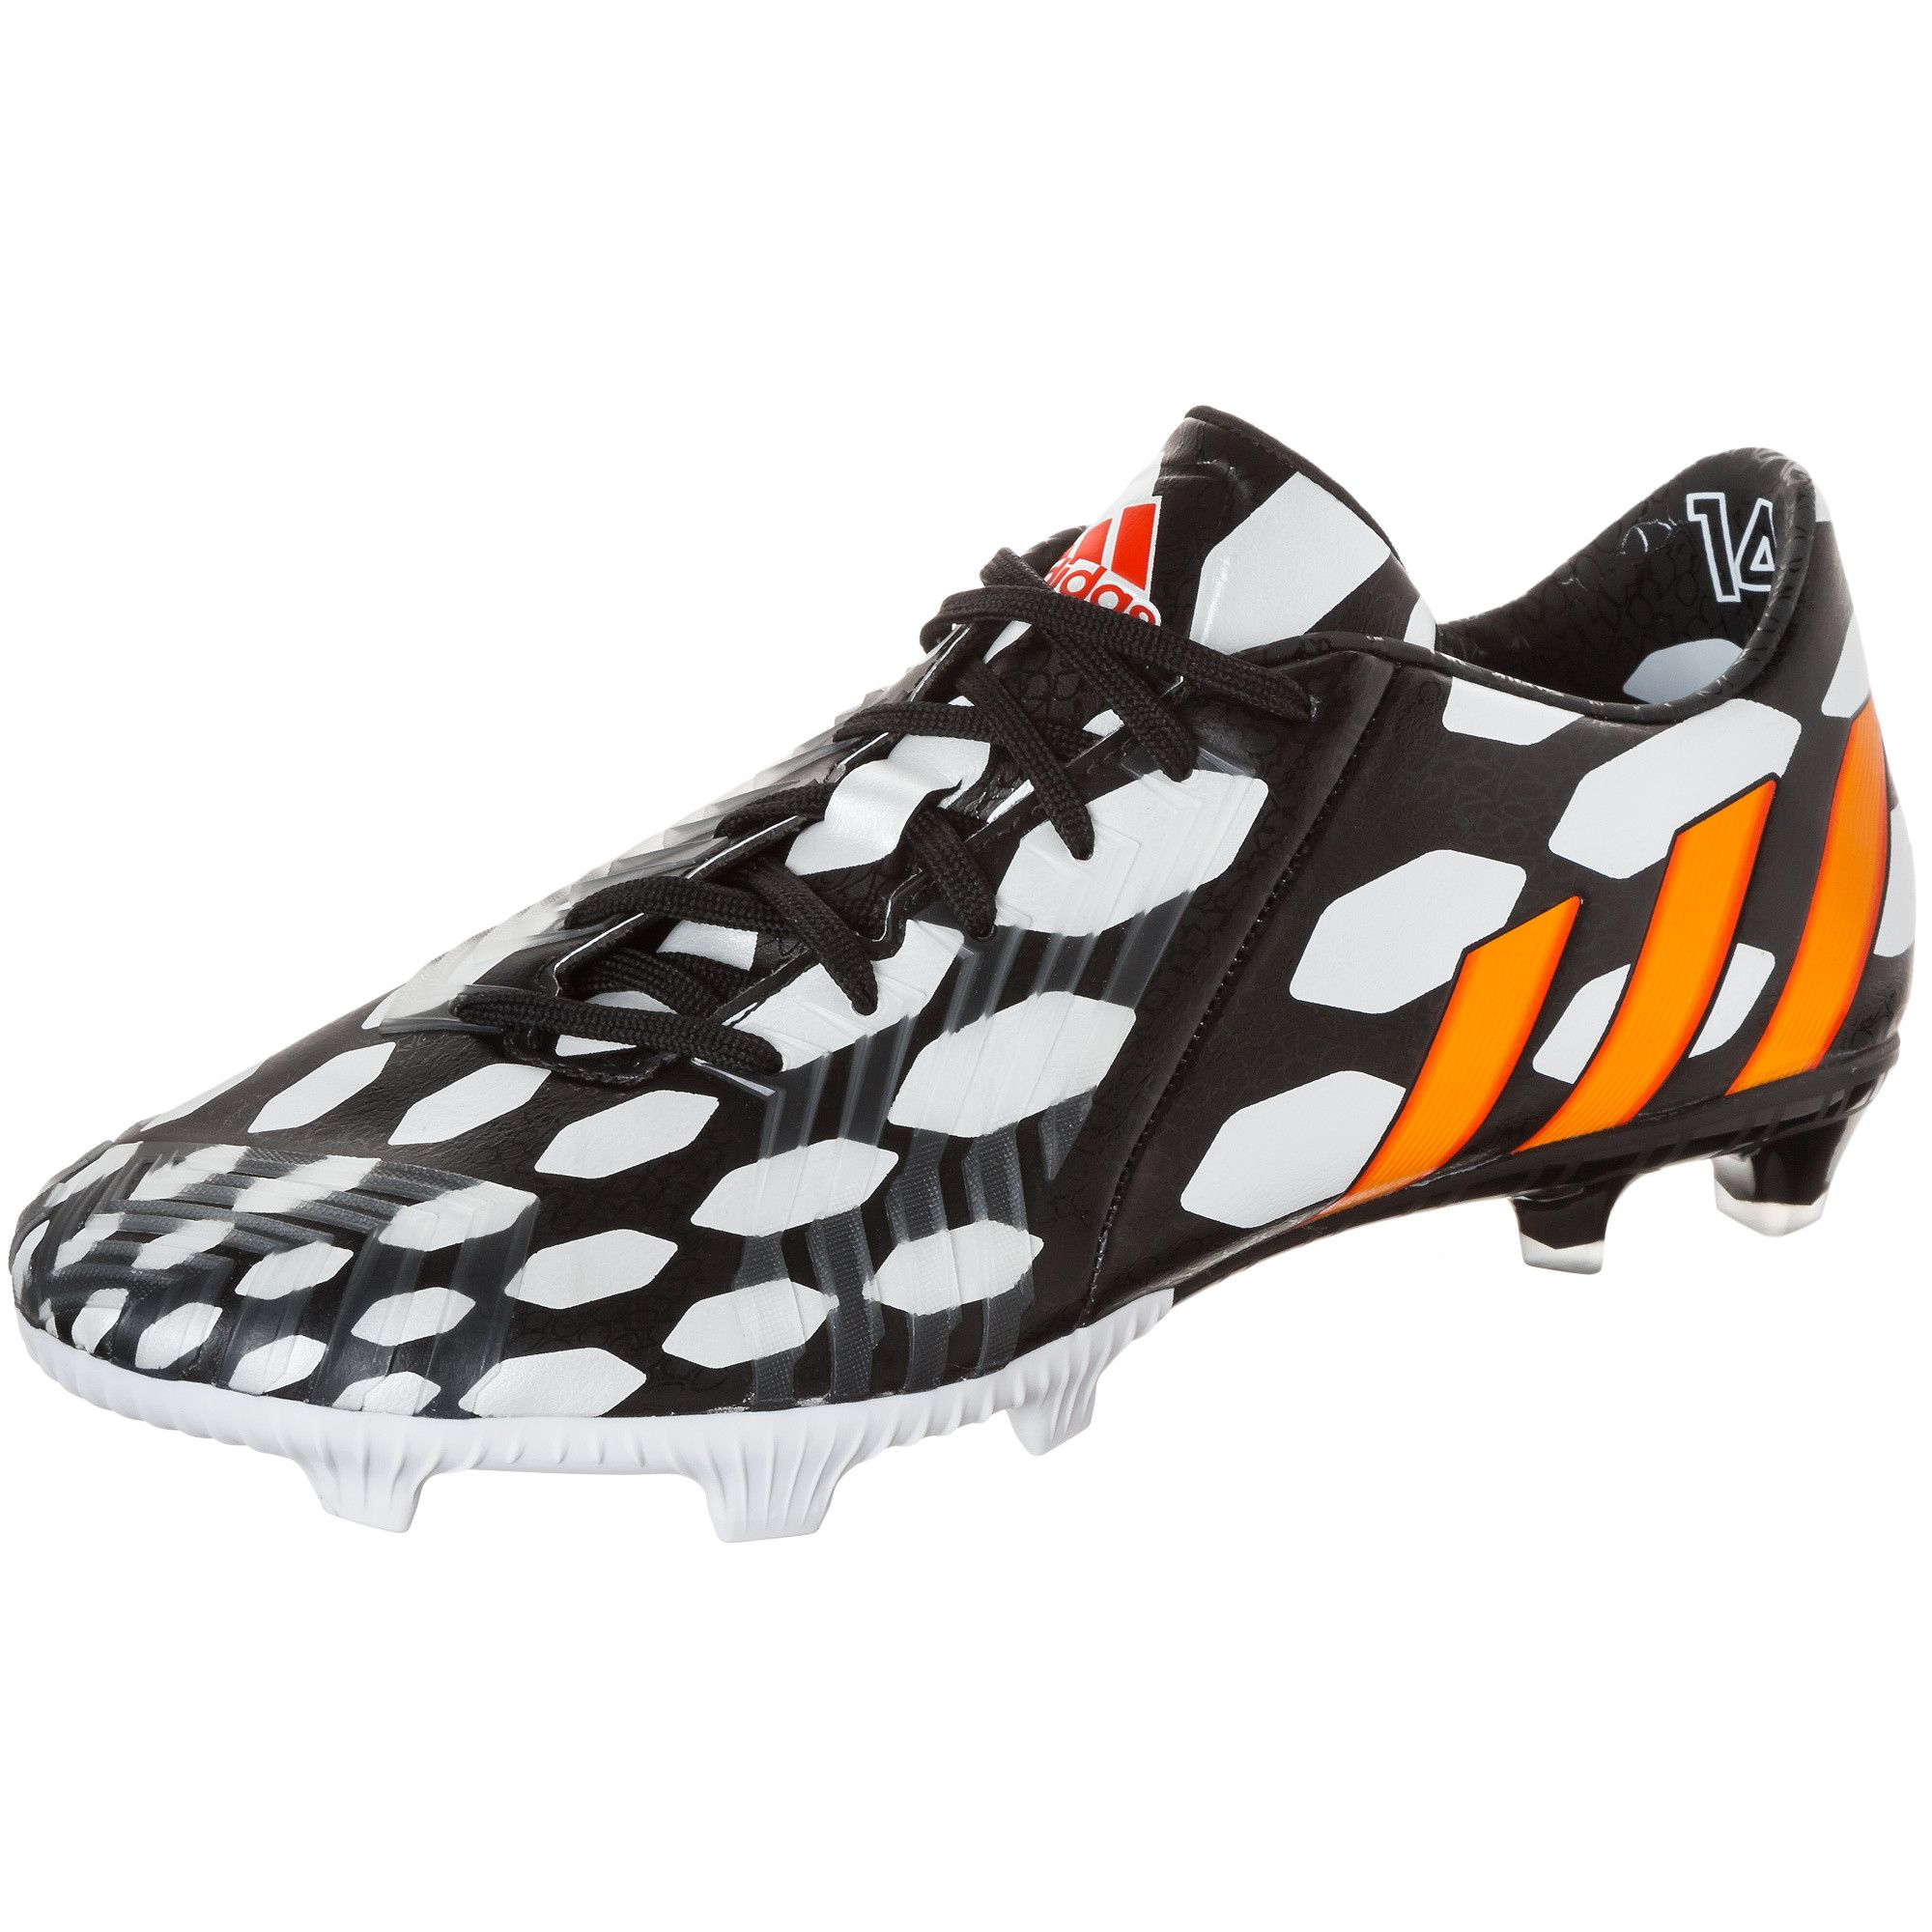 Limitado Novela de suspenso Eficiente  Adidas Predator Absolion LZ TRX FG (World Cup Battle Pack) | Mens soccer  cleats, Soccer shoes, Junior shoes